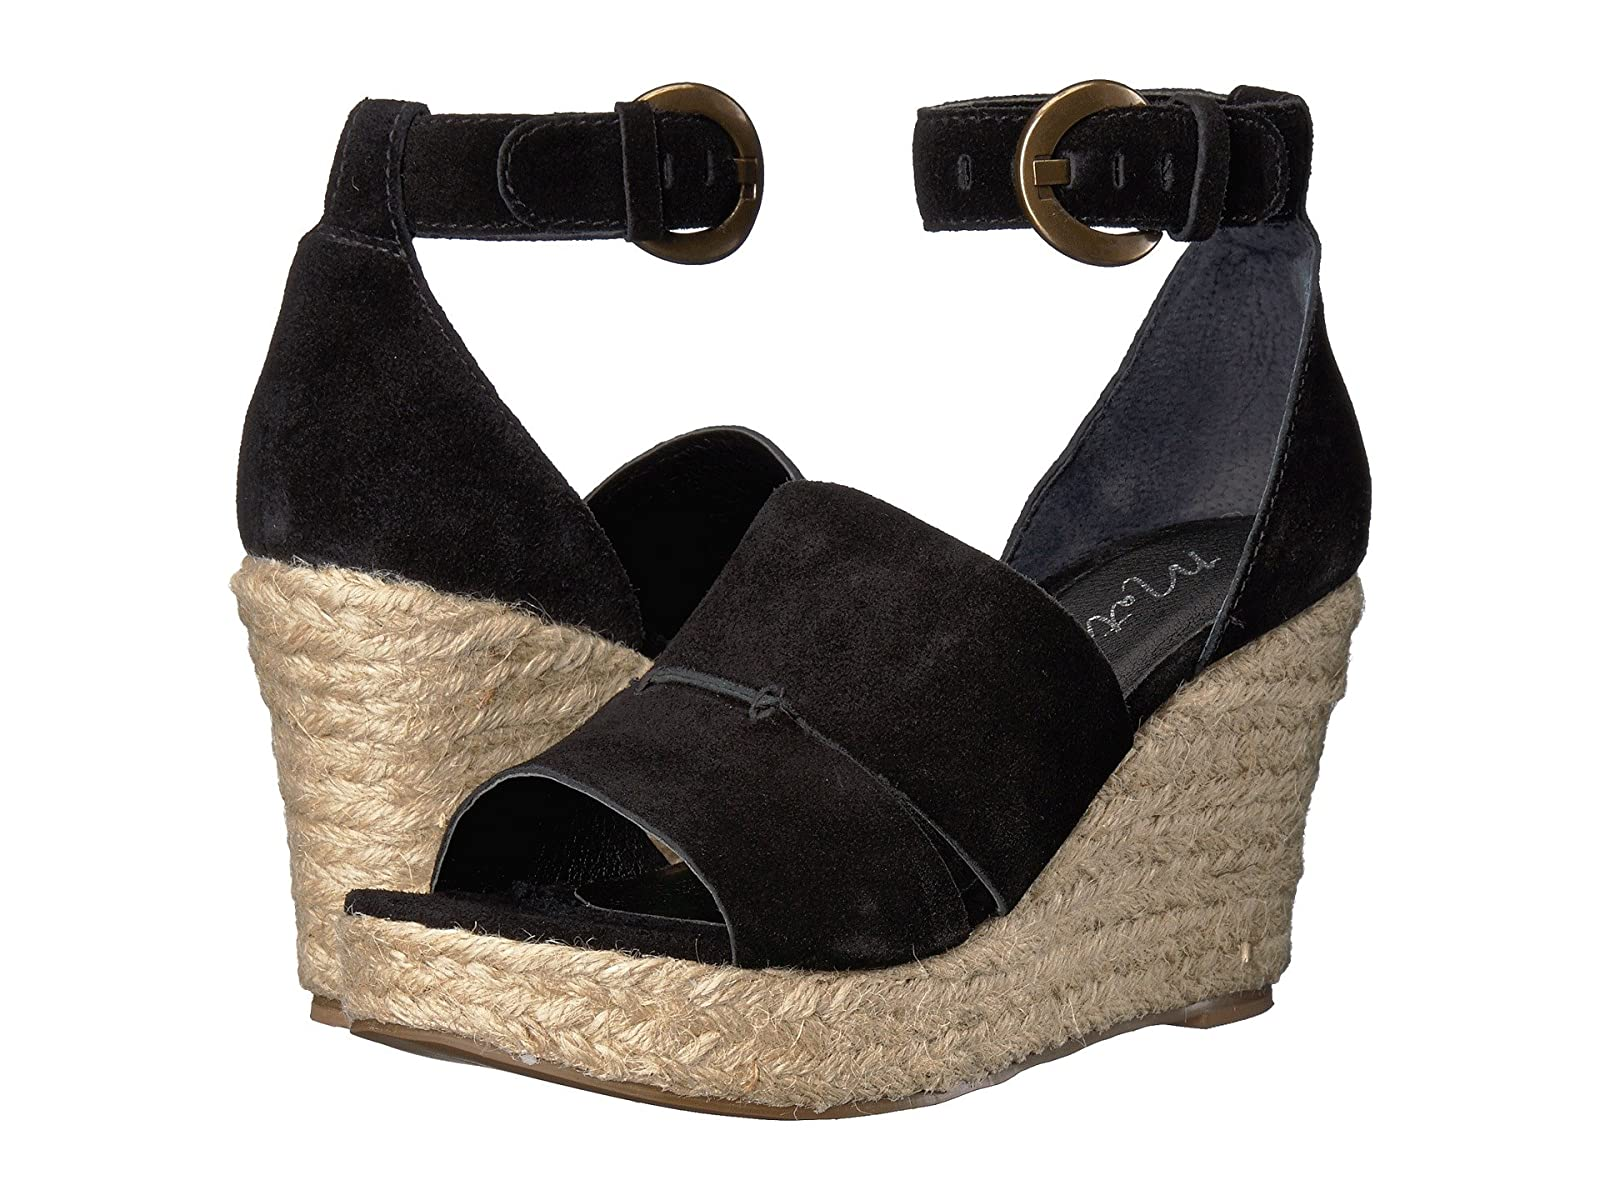 Matisse Cha Cha WedgeAtmospheric grades have affordable shoes